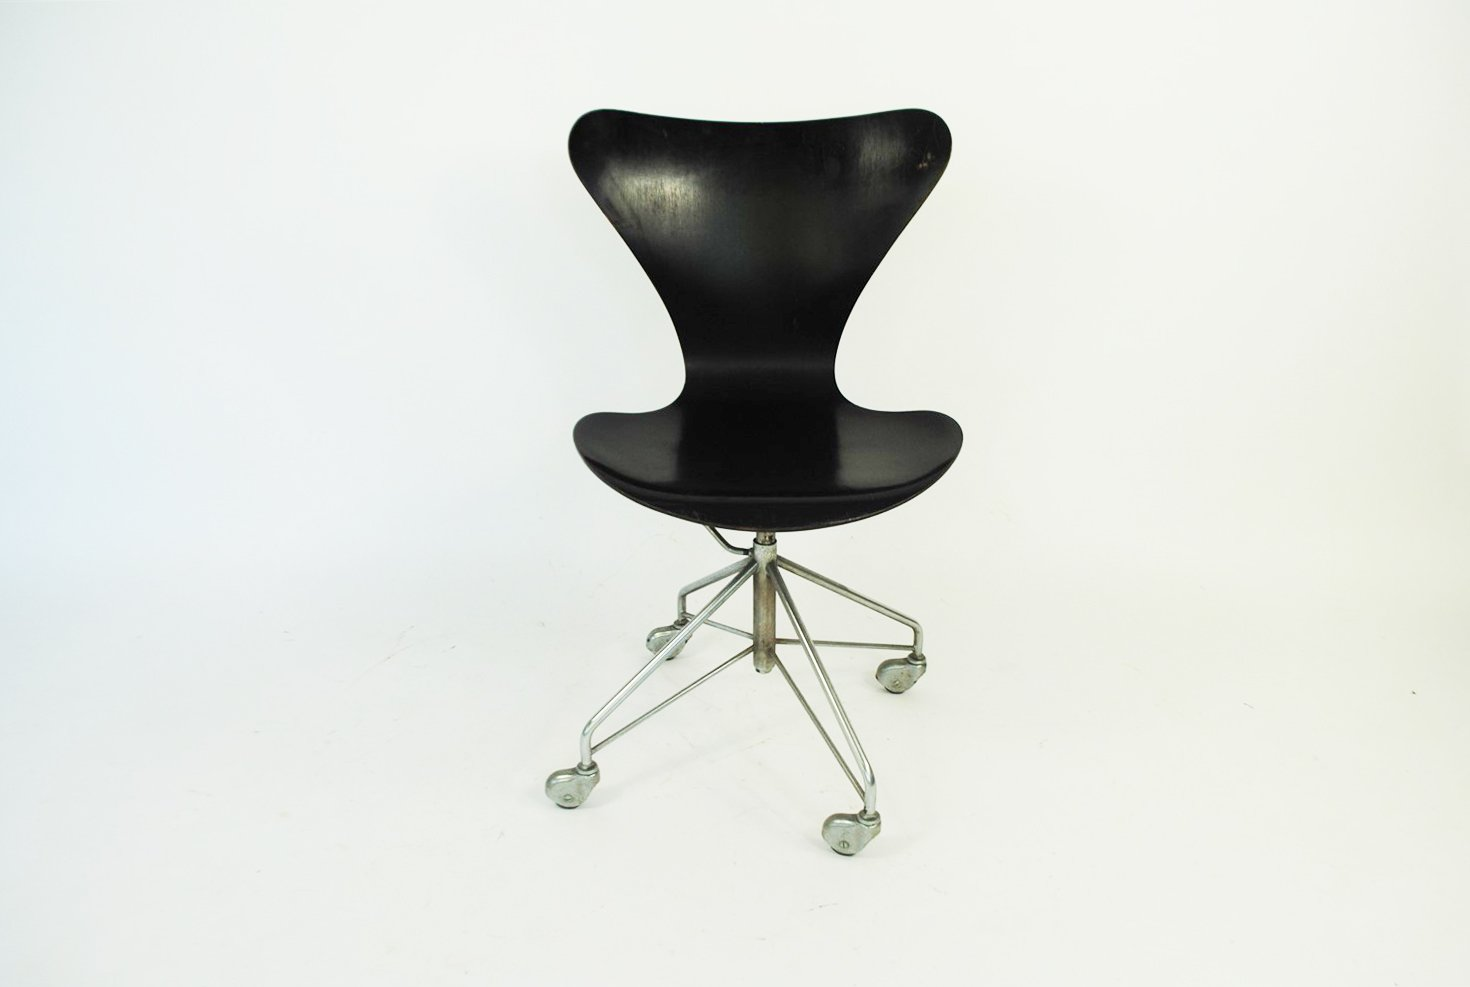 Arne jacobsen office chair Model 3217 Desk Chair By Arne Jacobsen For Fritz Hansen 1963 7 103400 Price Per Piece Pamono Desk Chair By Arne Jacobsen For Fritz Hansen 1963 For Sale At Pamono